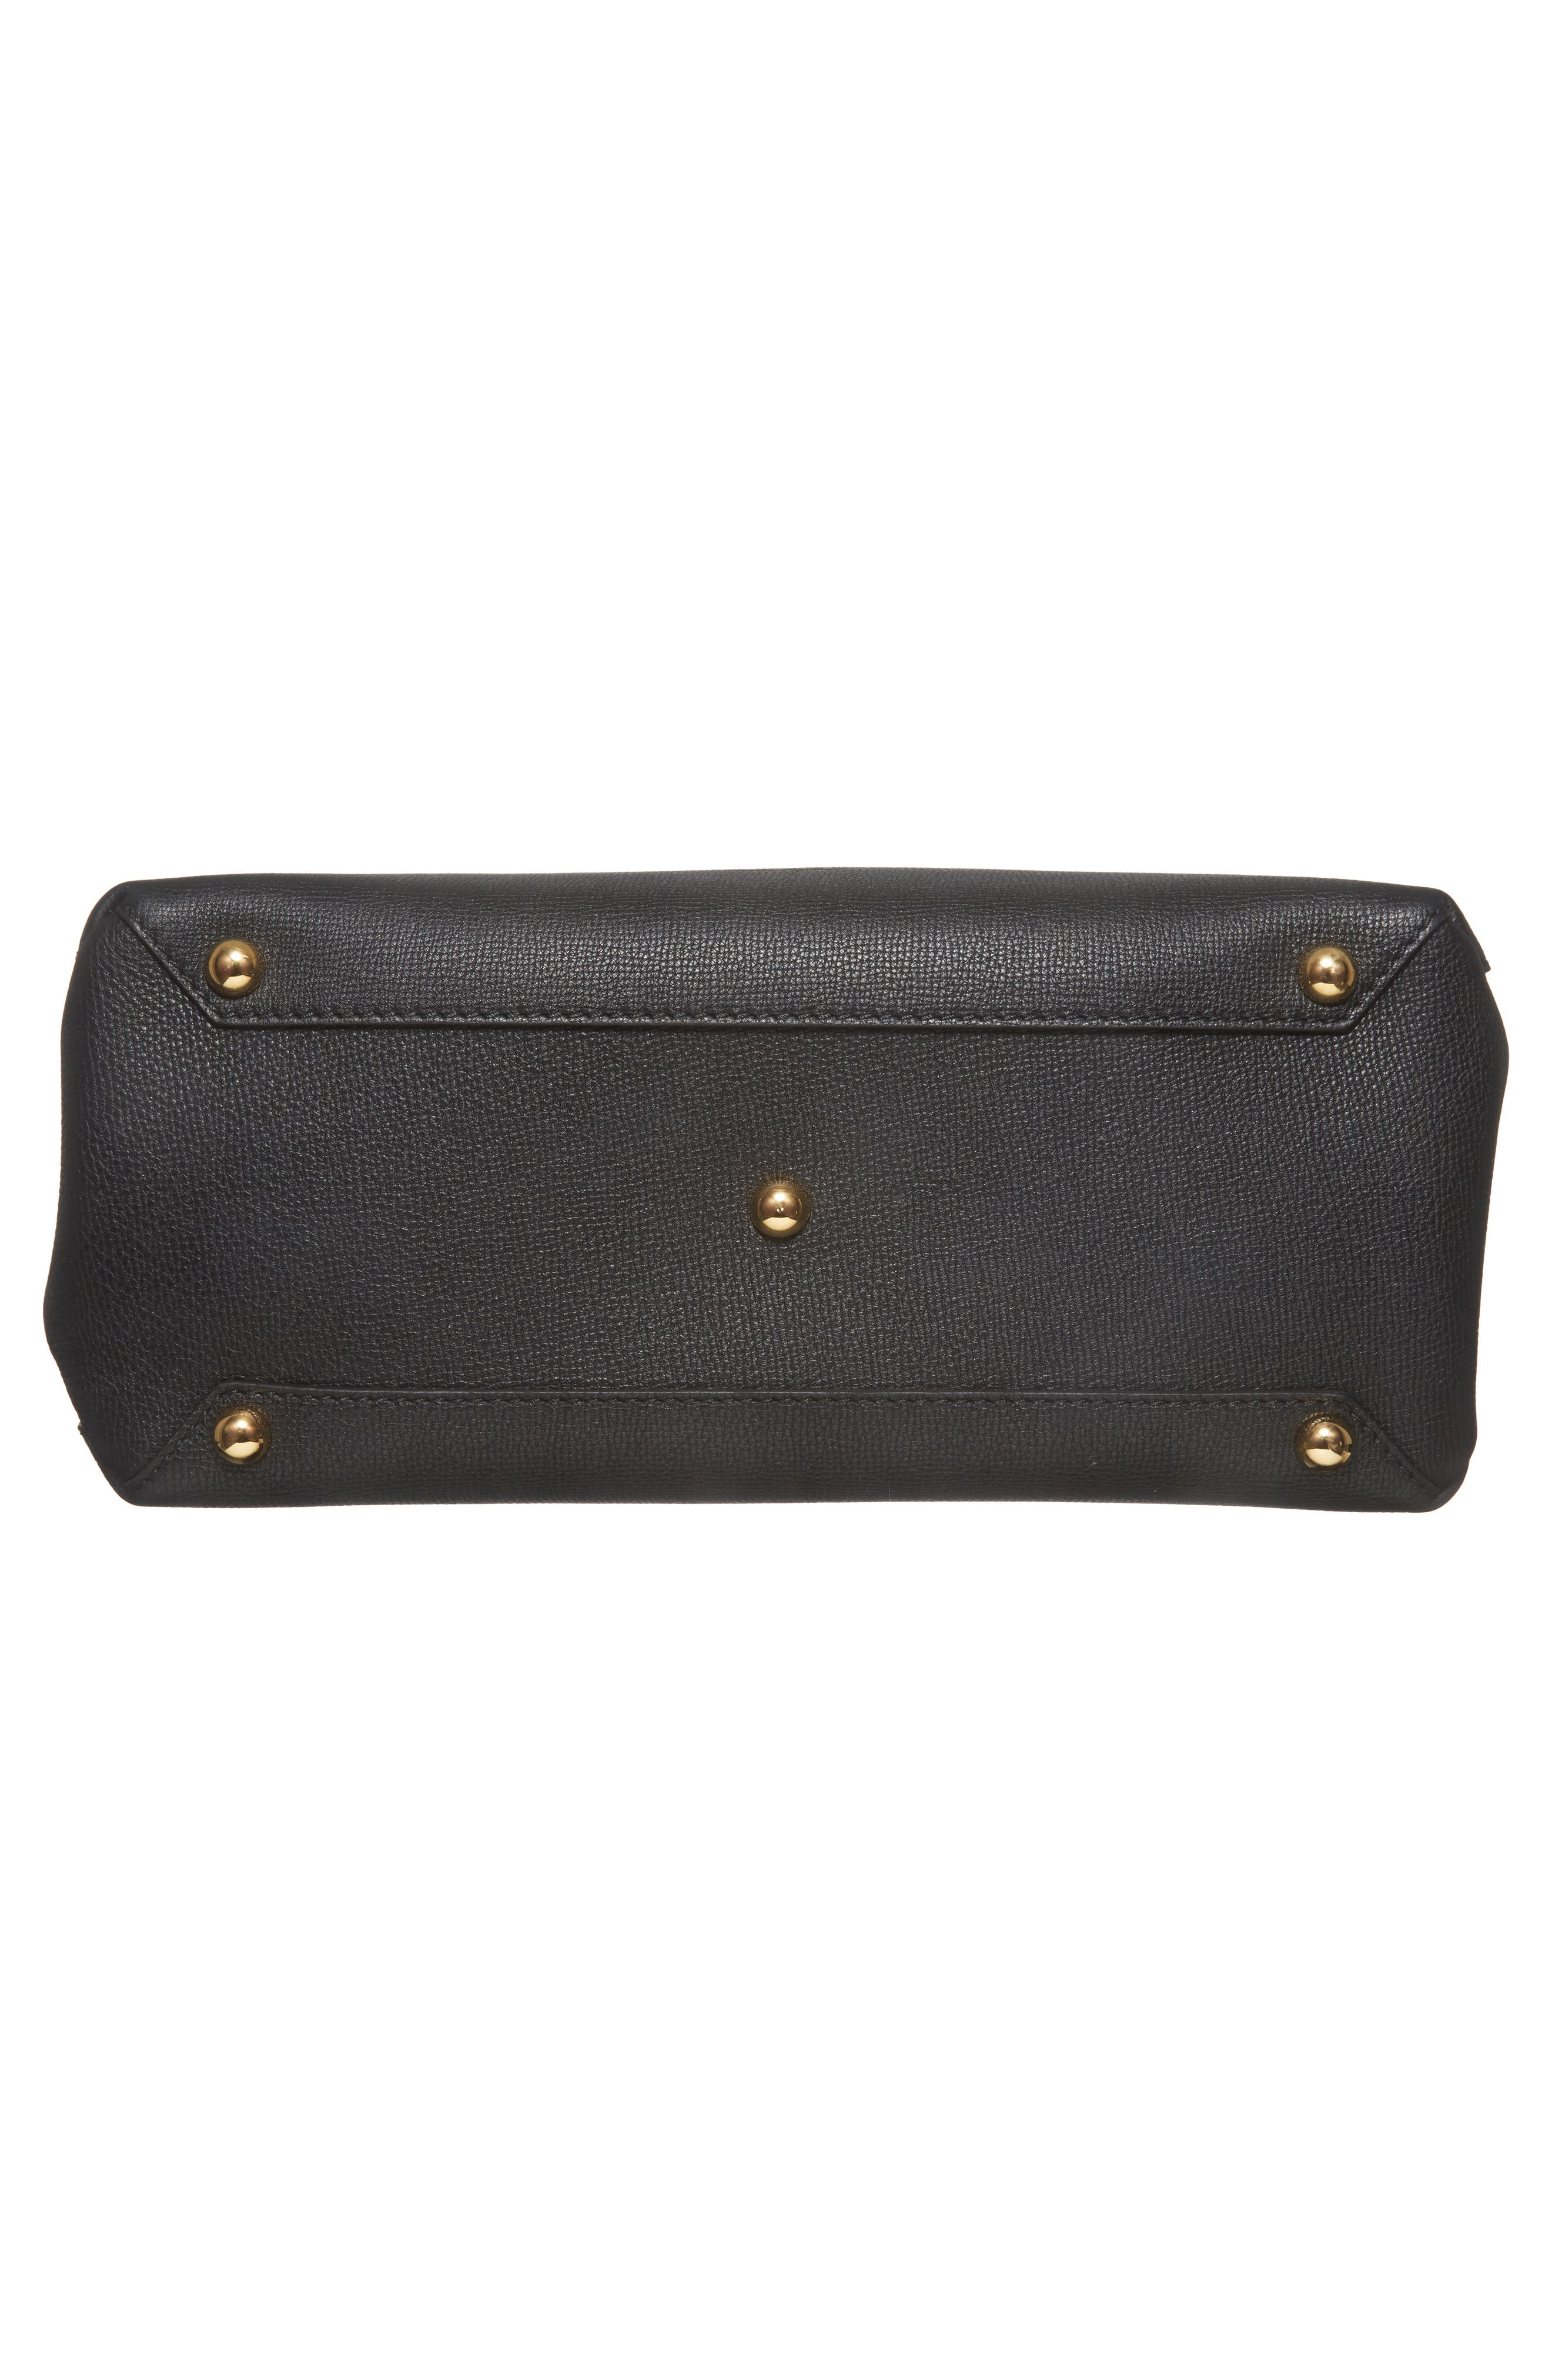 Medium Camberley Leather & House Check Top Handle Satchel,                             Alternate thumbnail 6, color,                             Black